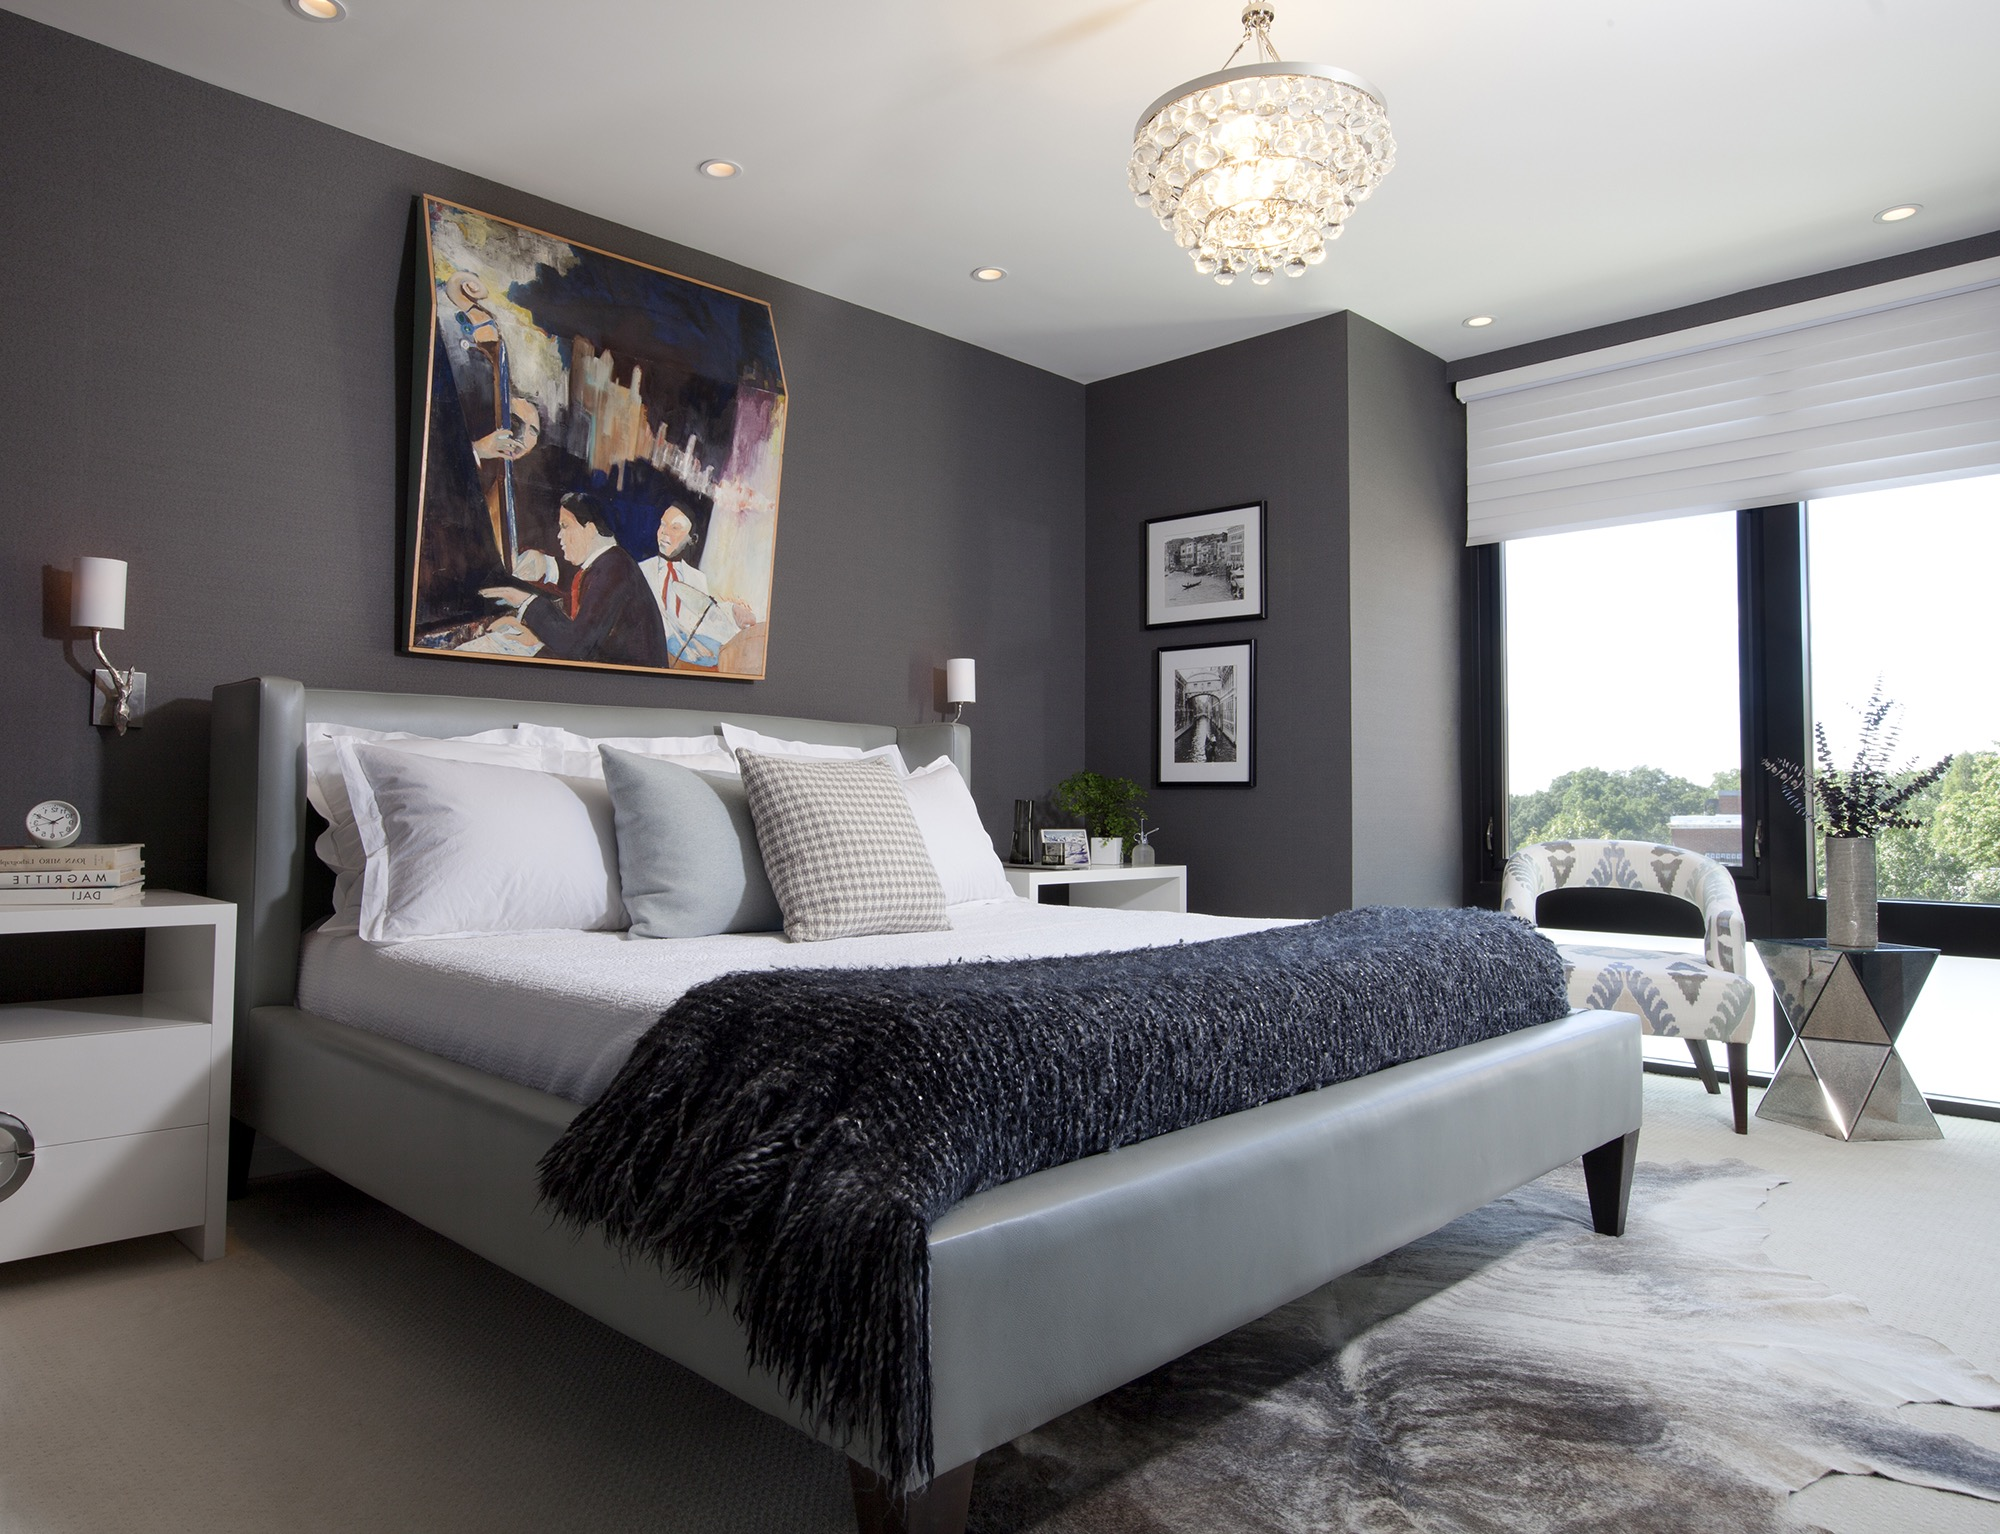 Sophisticated Gray Parents Bedroom With Colorful Abstract Art (Image 28 of 30)